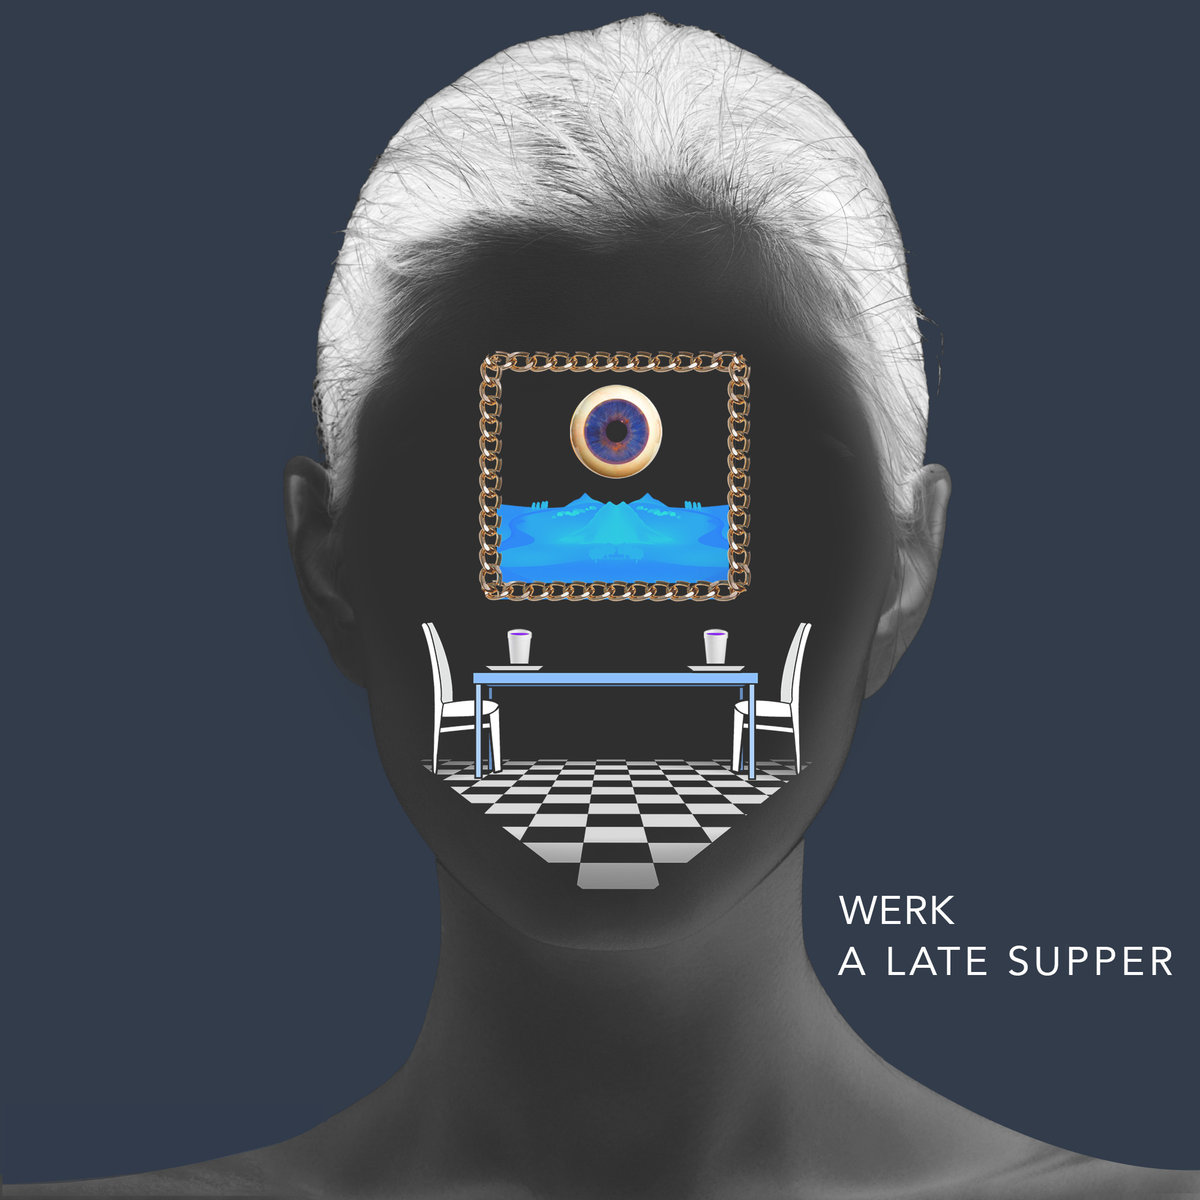 WERK - Throw Up Your P's And Q's @ 'A Late Supper' album (electronic, dubstep)